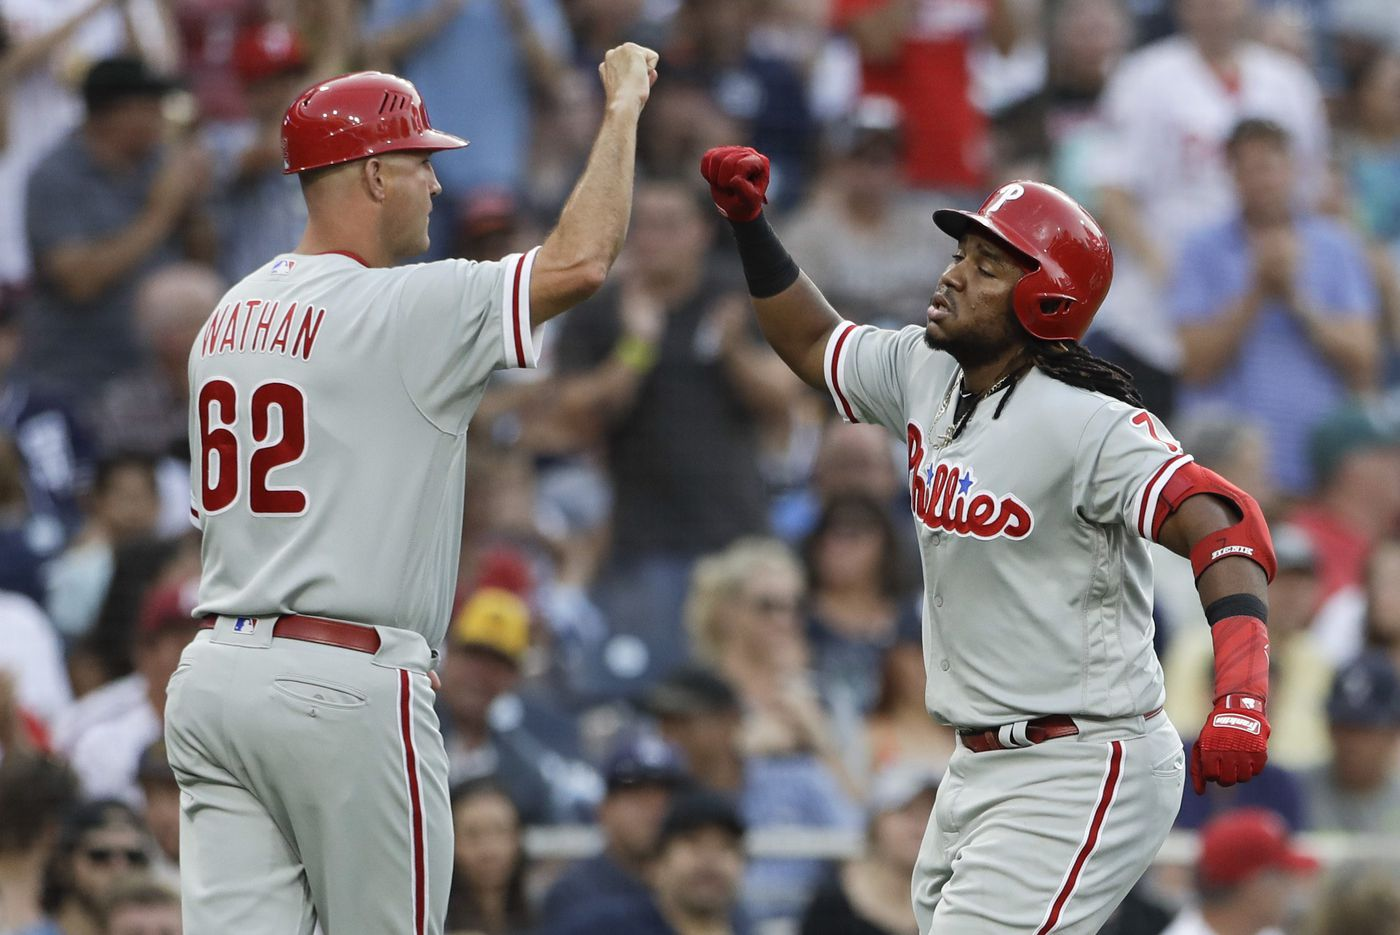 Phillies' slumbering offense breaks out against Padres rookie starter in 5-1 win